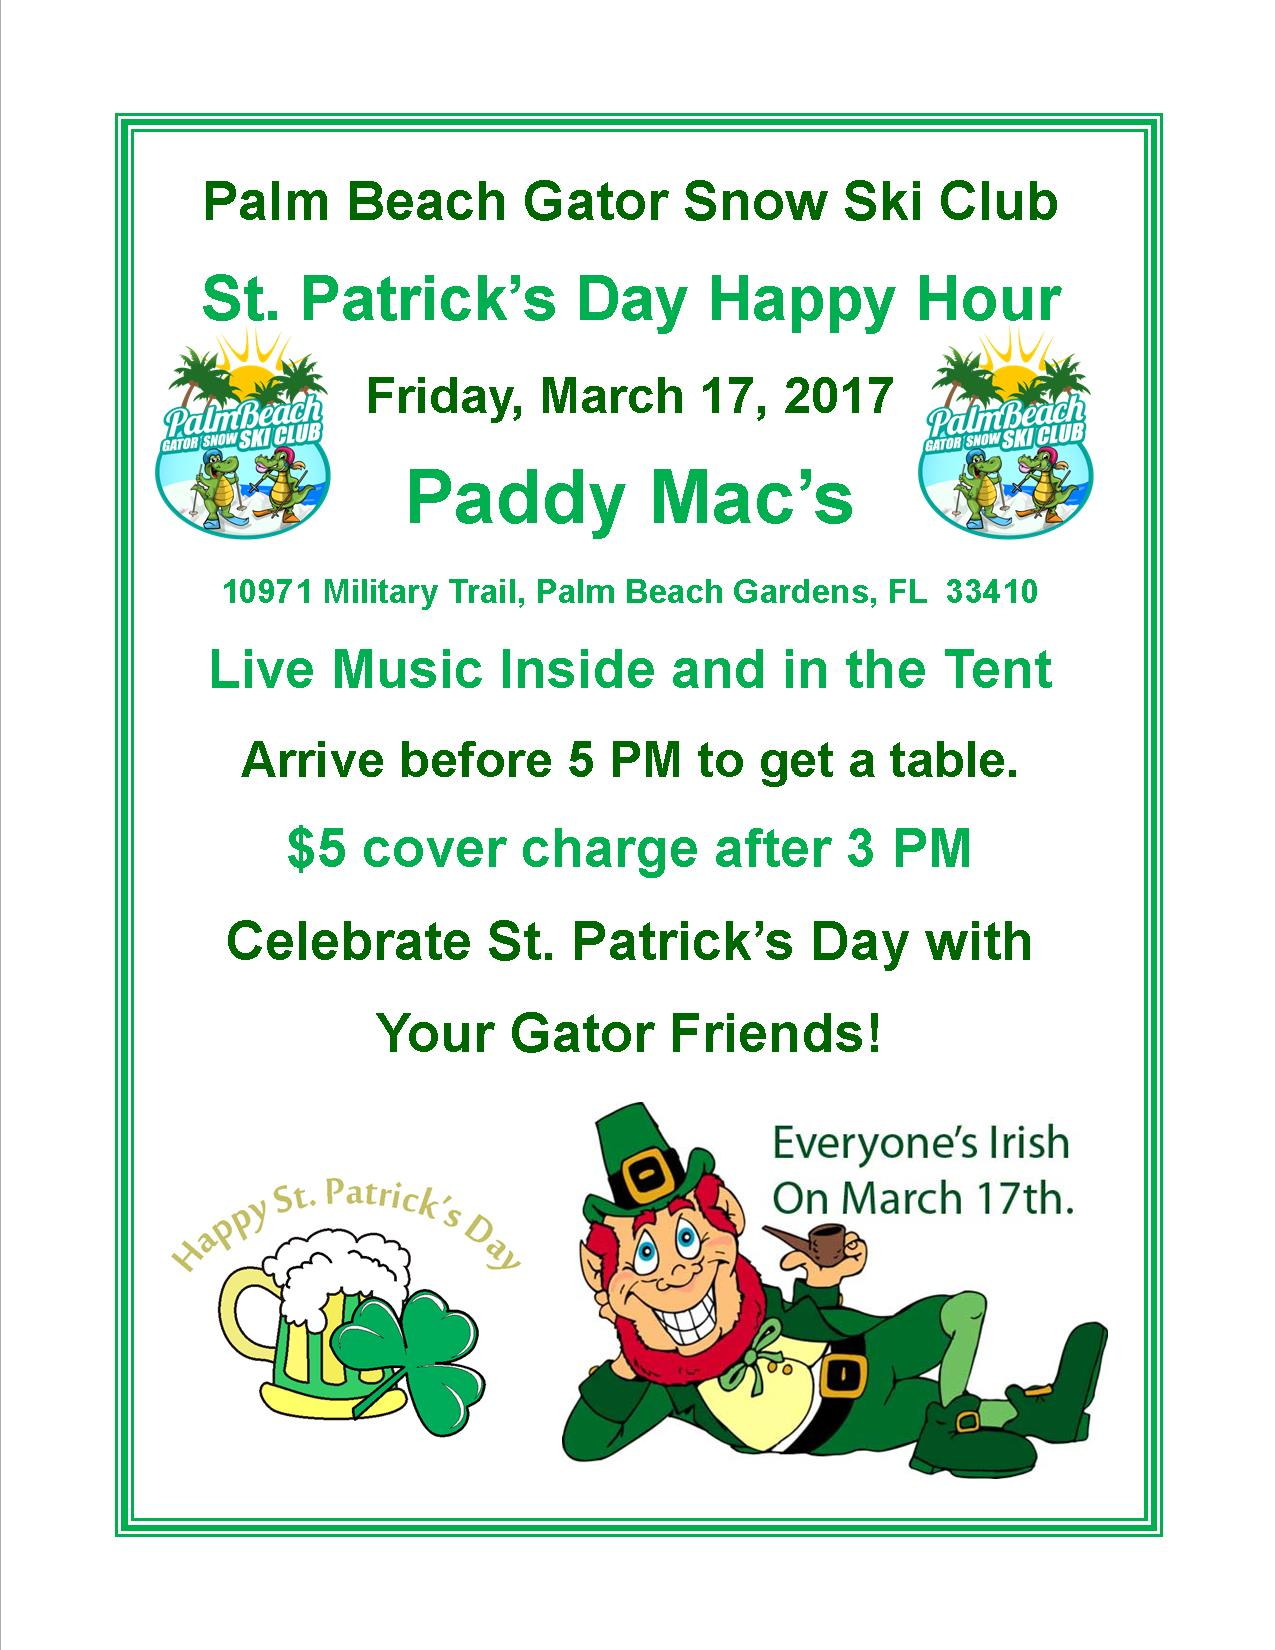 Palm beach gator snow ski club st patricks day happy hour at paddy macs for St patrick s church palm beach gardens